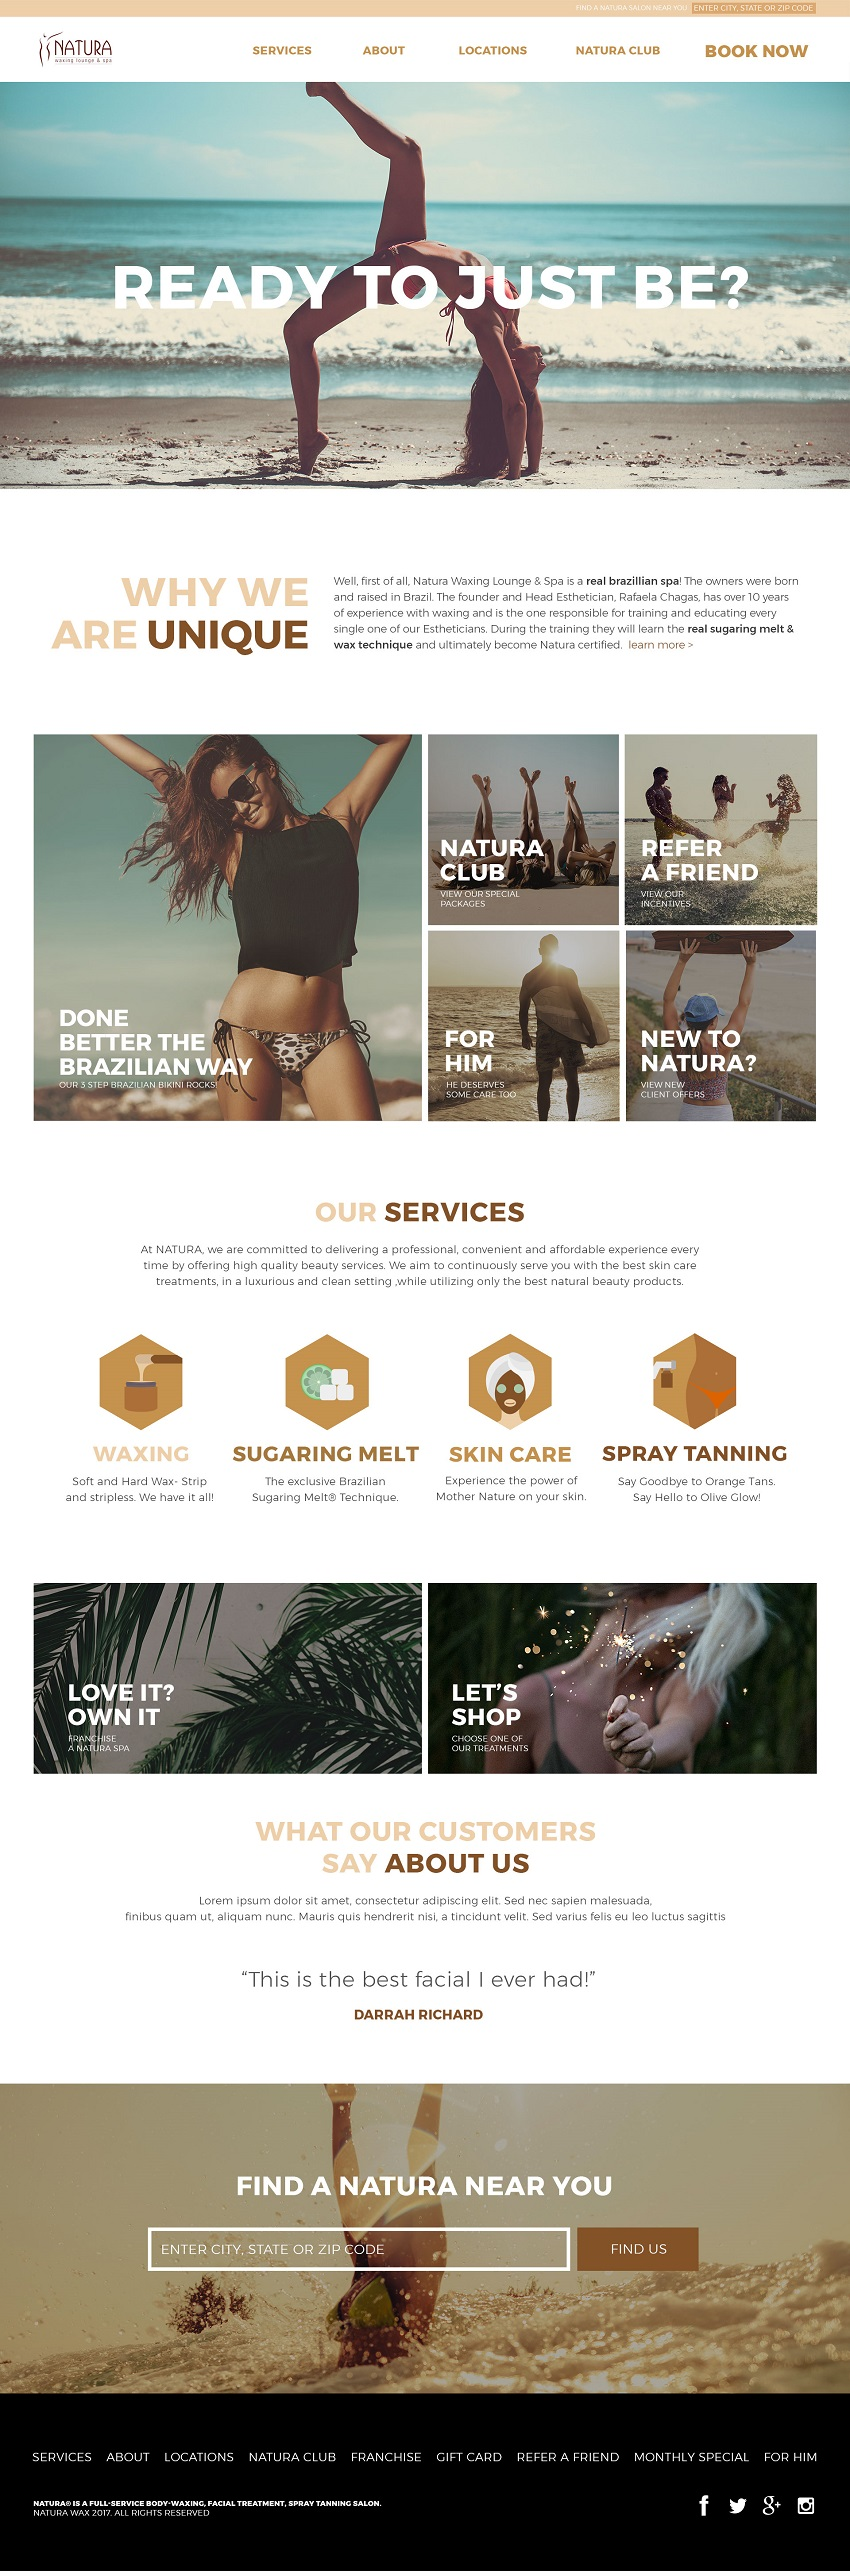 Image of Natura website design